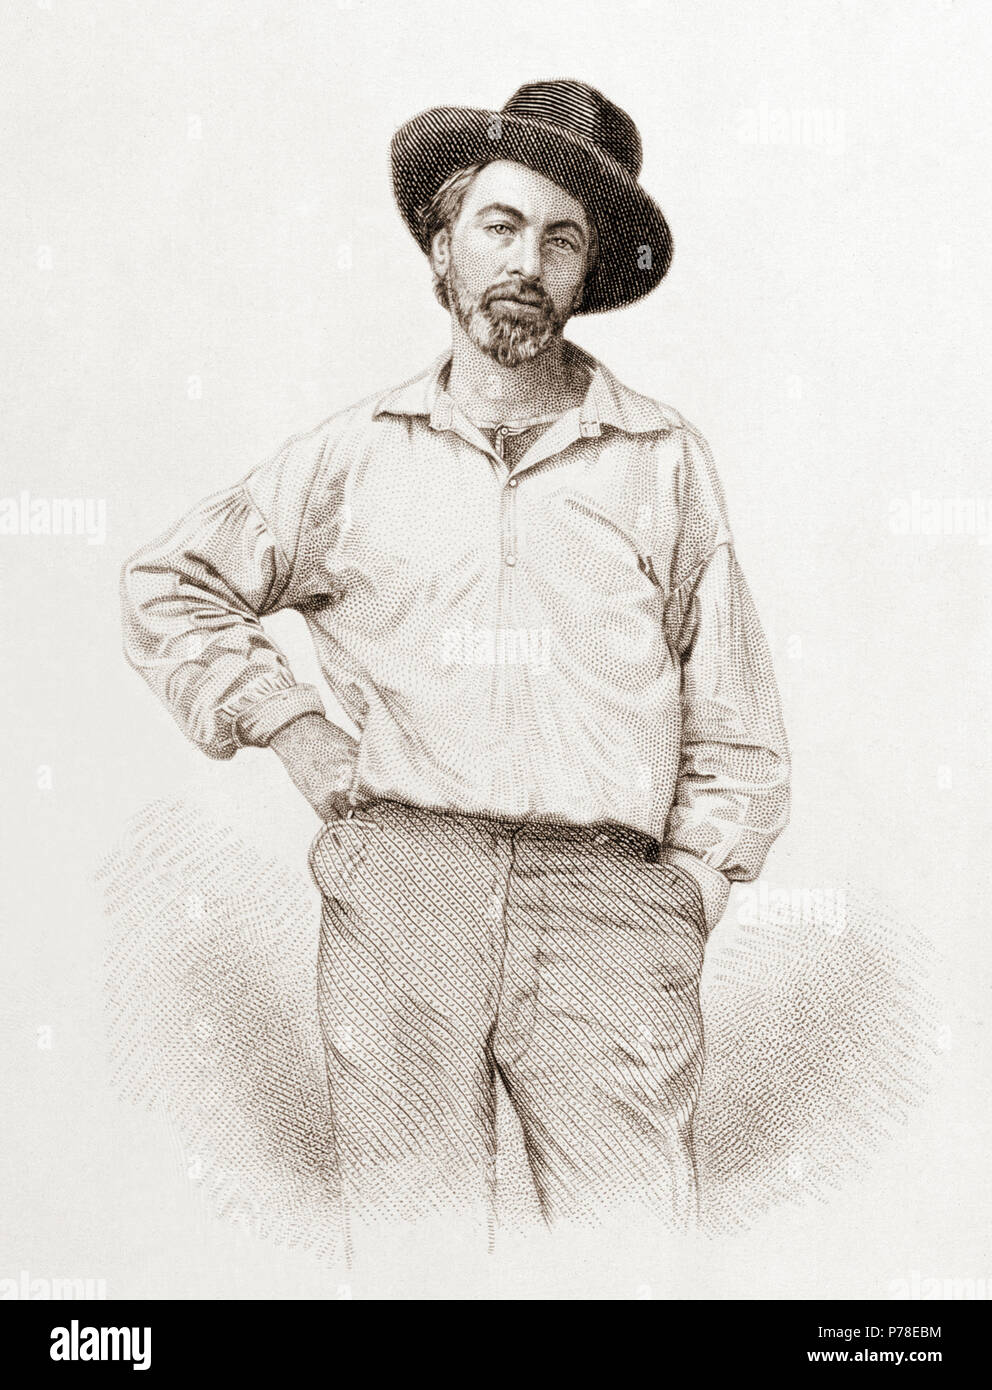 Walt Whitman (1819-1892), age 37, frontispiece to Leaves of grass, Fulton St., Brooklyn, N.Y., 1855, steel engraving by Samuel Hollyer from a lost daguerreotype by Gabriel Harrison. . July 1854 65 Walt Whitman, steel engraving, July 1854 - Stock Image